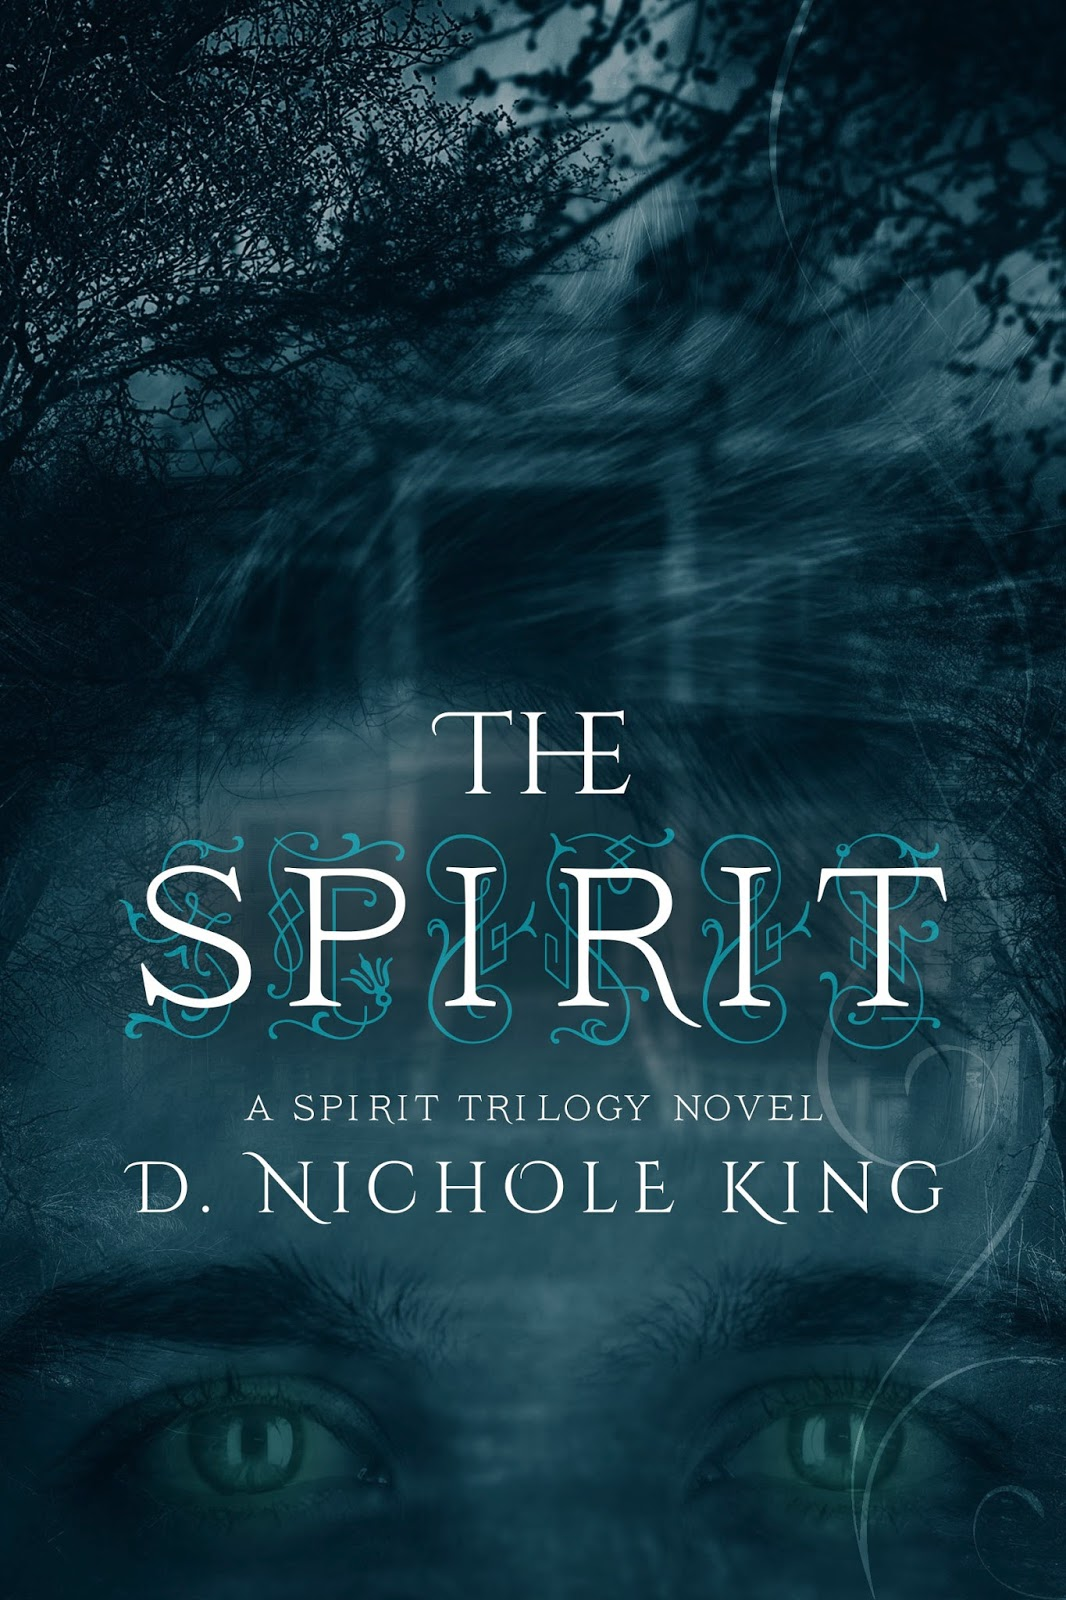 https://www.goodreads.com/book/show/20529381-the-spirit